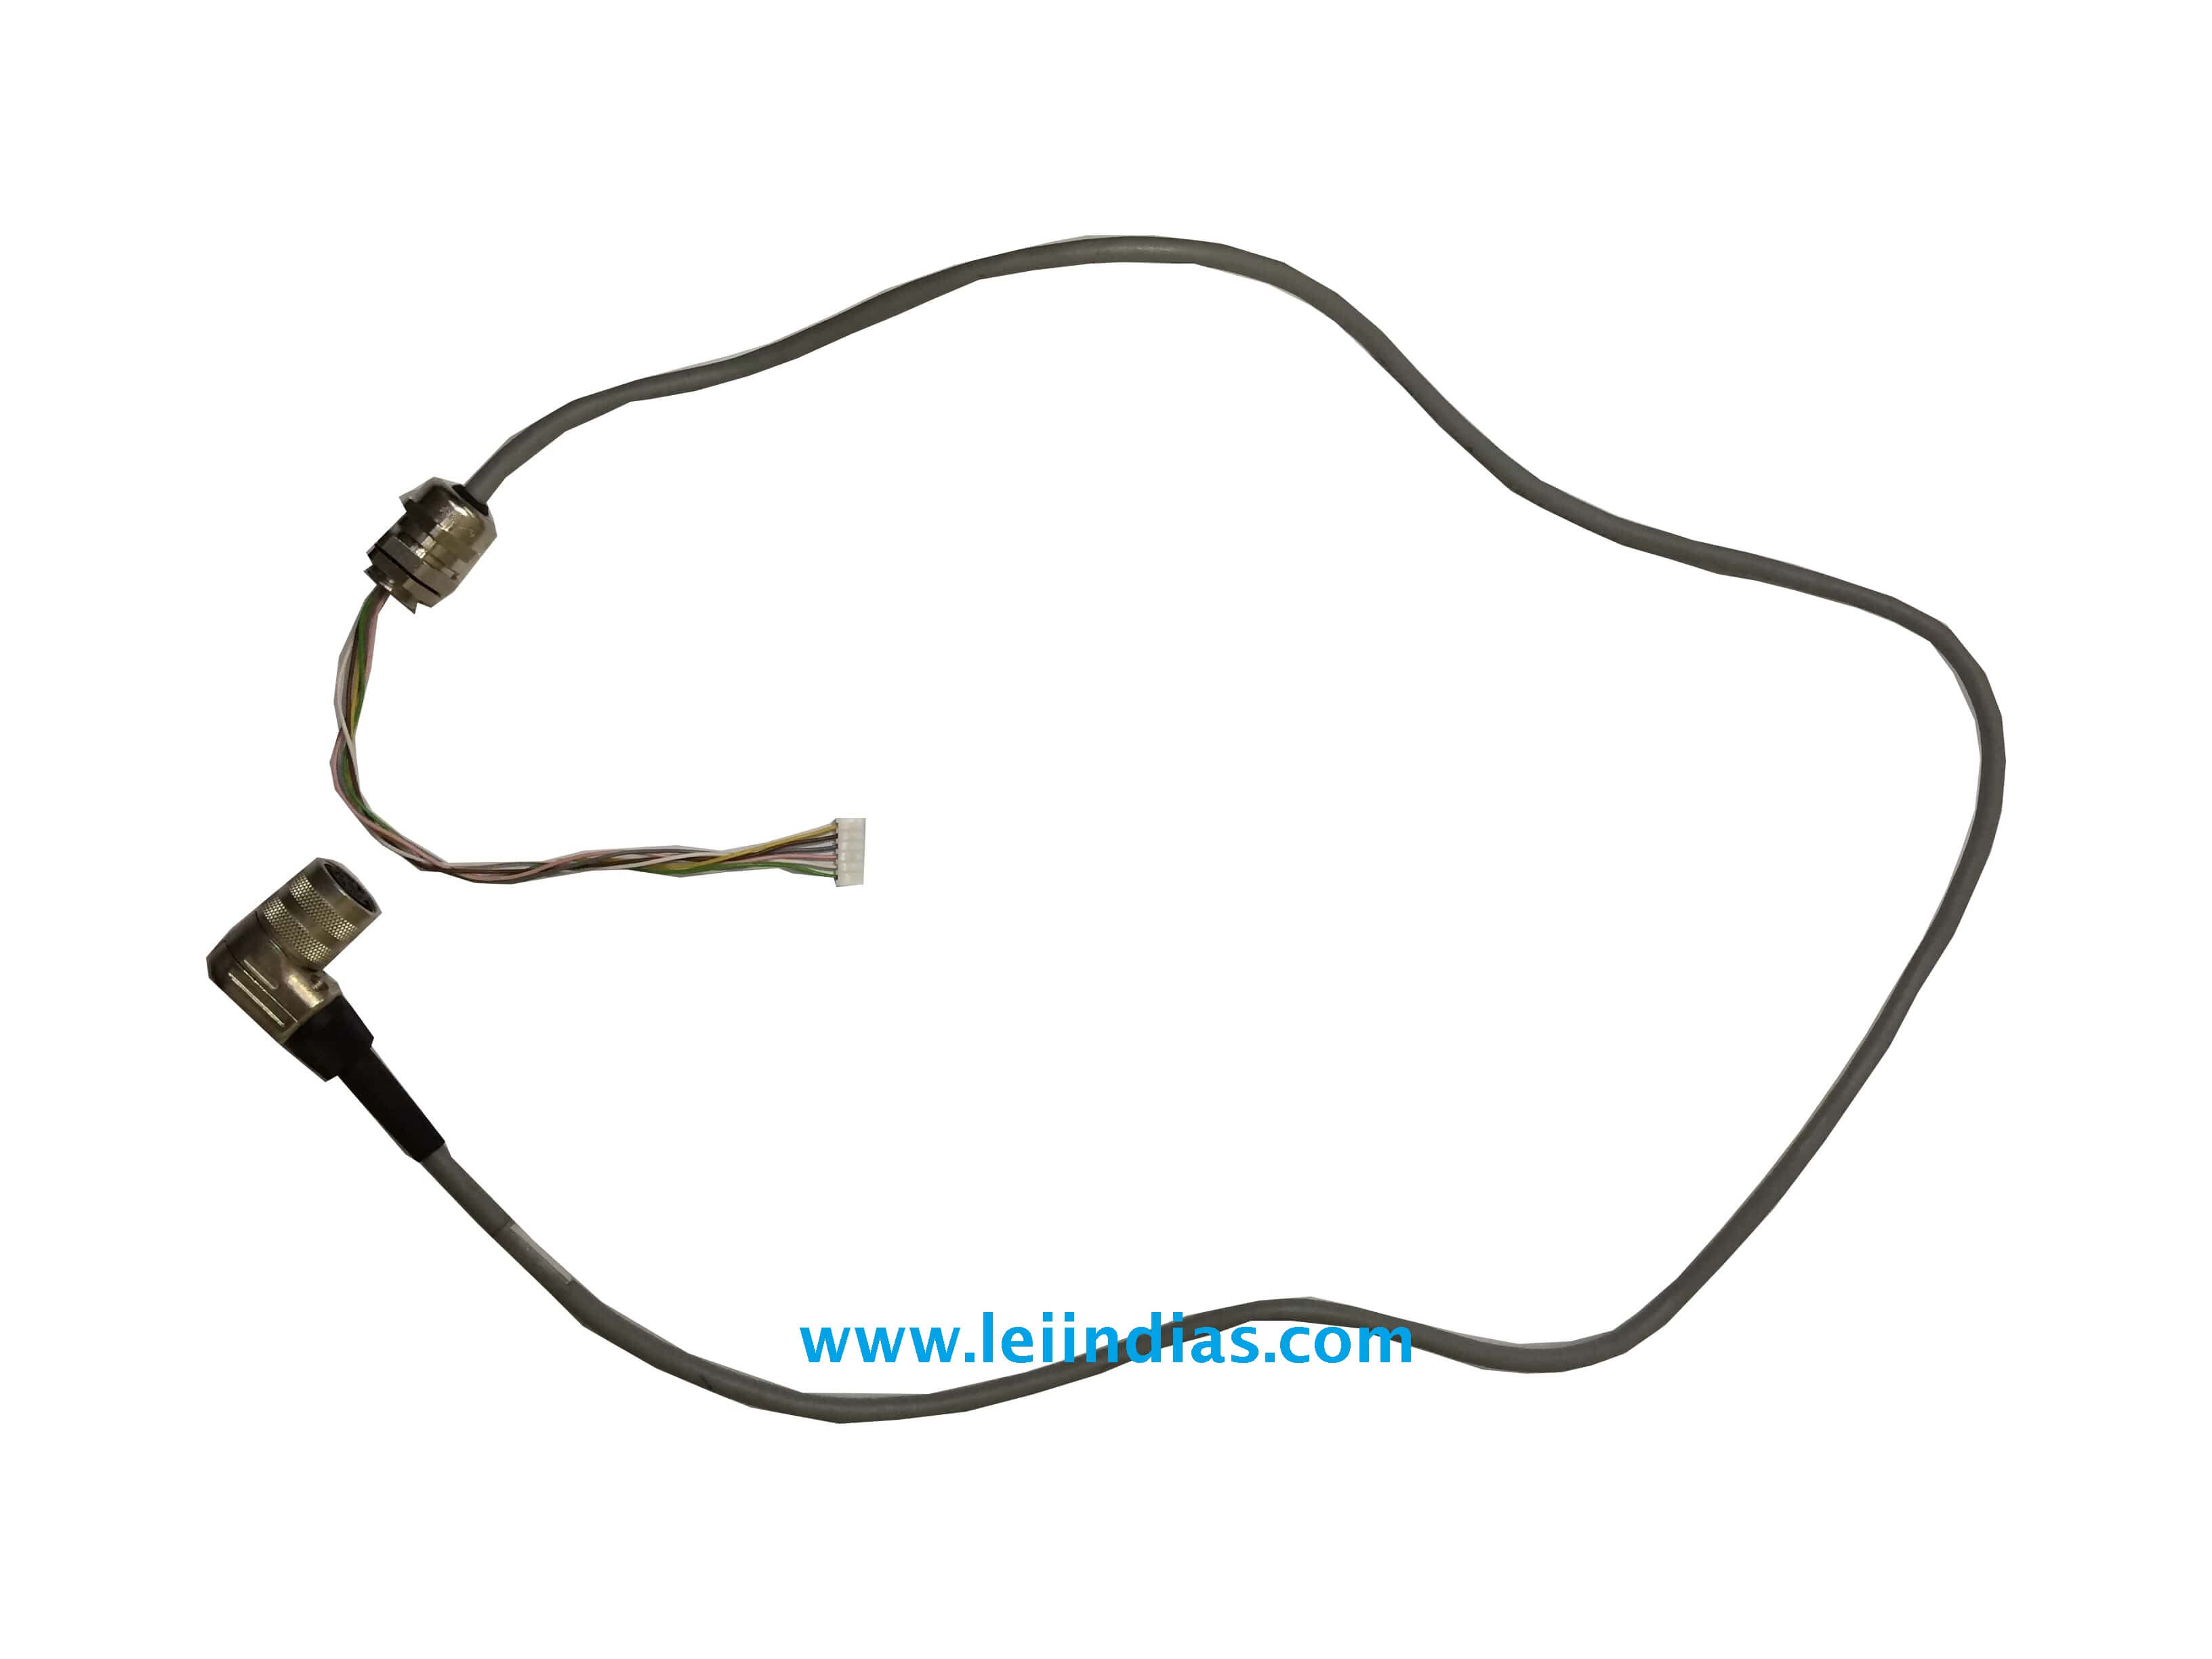 Cable And Wiring Harness Assembly Manufacturer